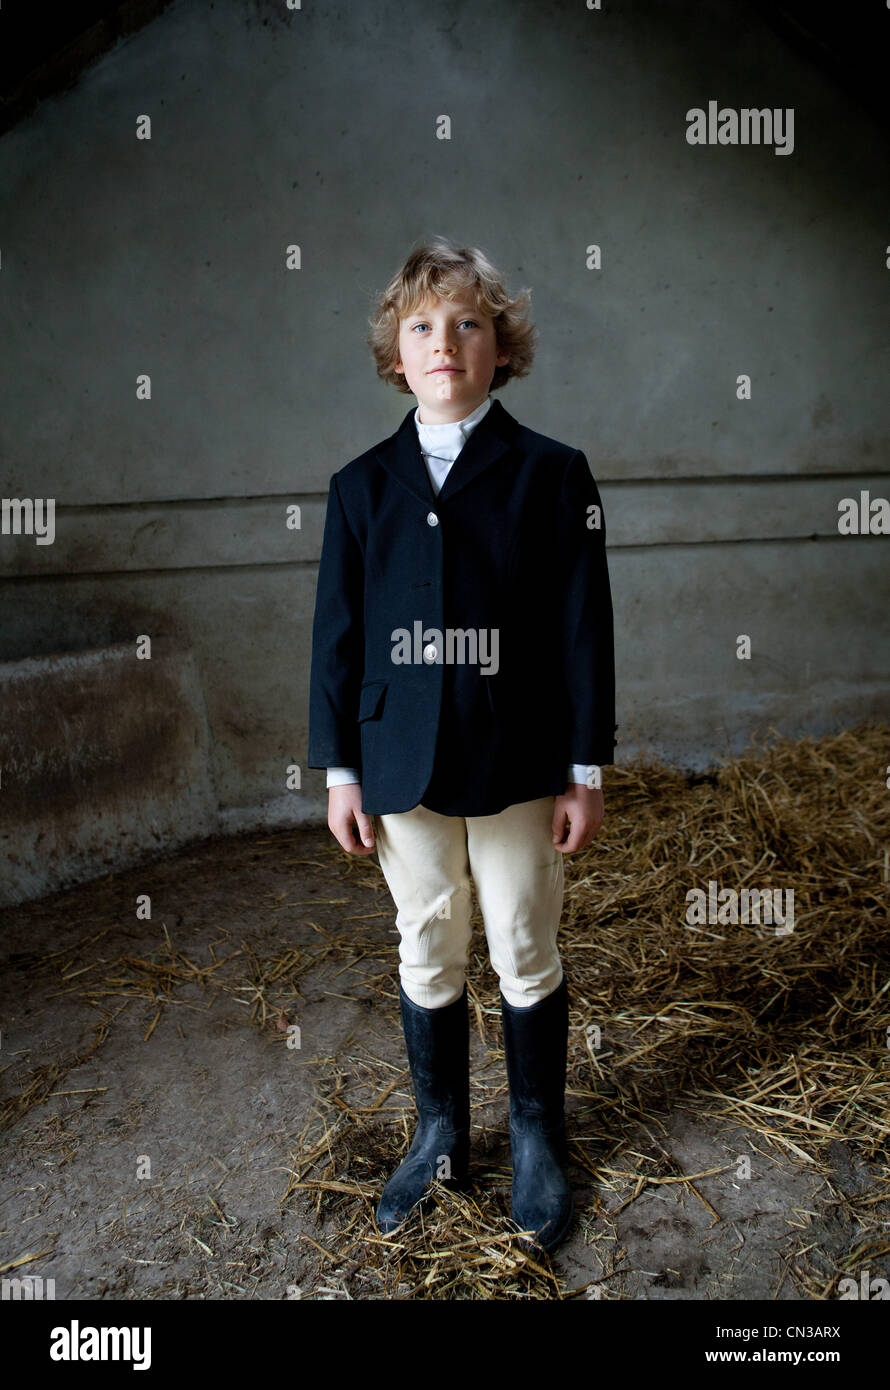 Boy Standing In Horse Riding Clothes In Stable Stock Photo Alamy